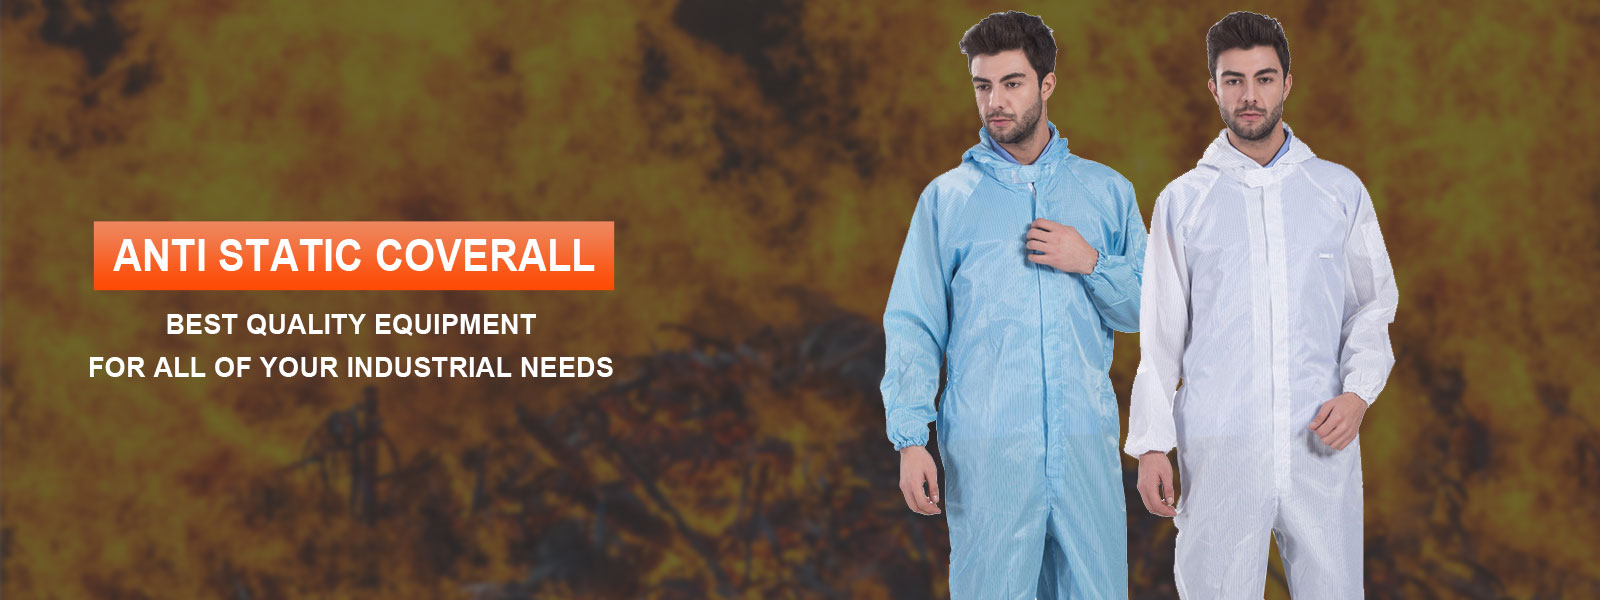 Anti Static Coverall Manufacturers in Zimbabwe